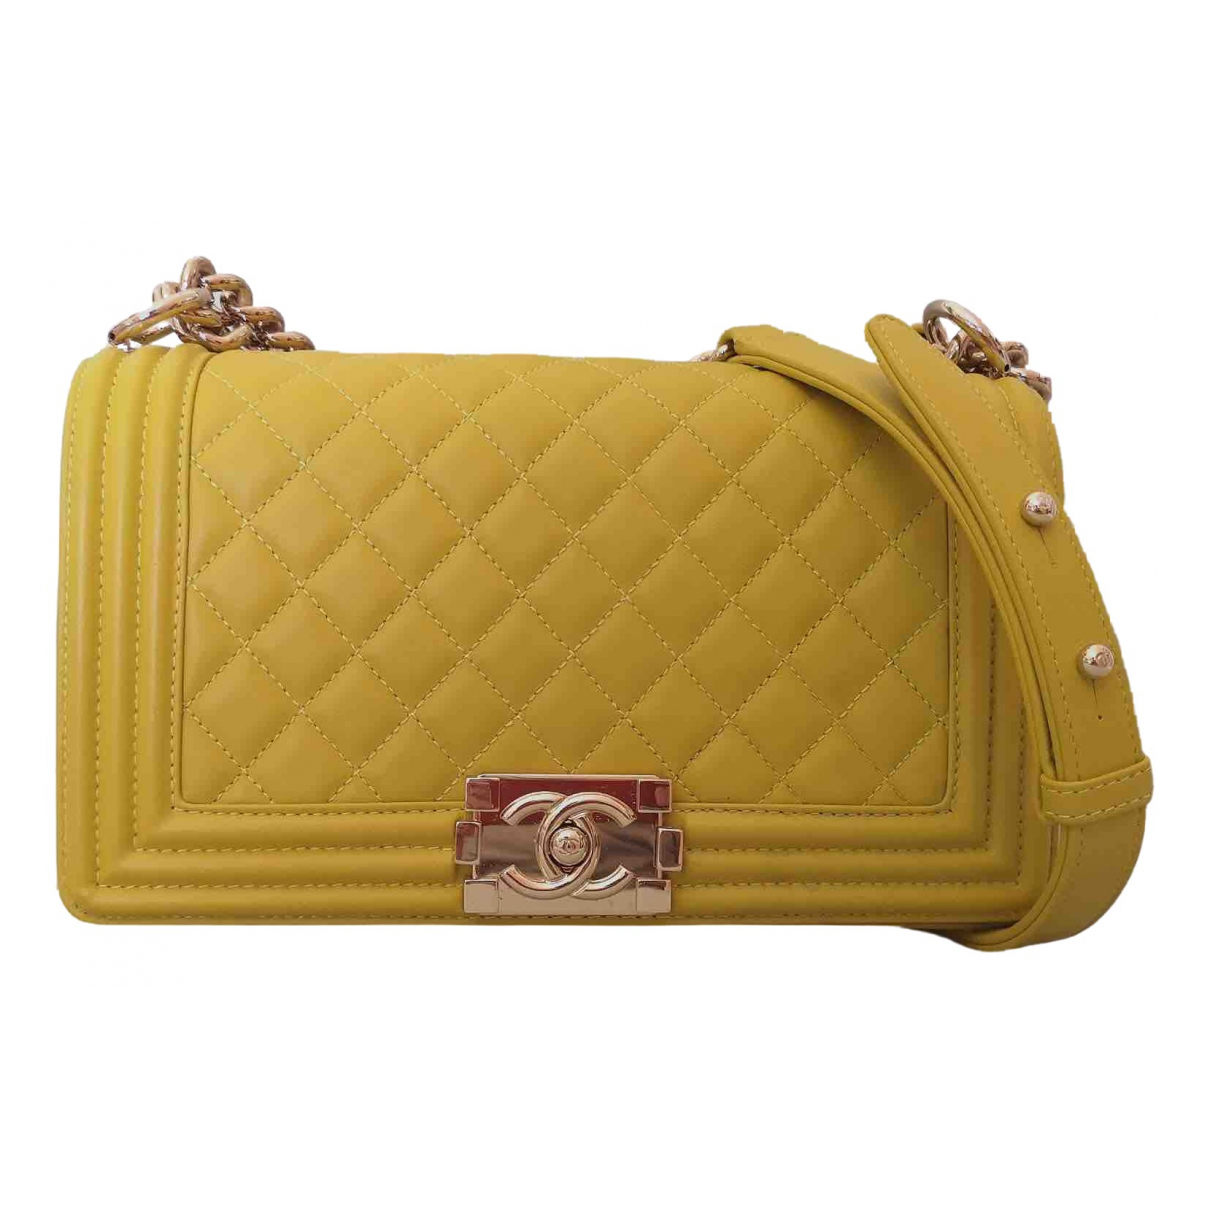 Chanel Boy Yellow Leather handbag for Women \N